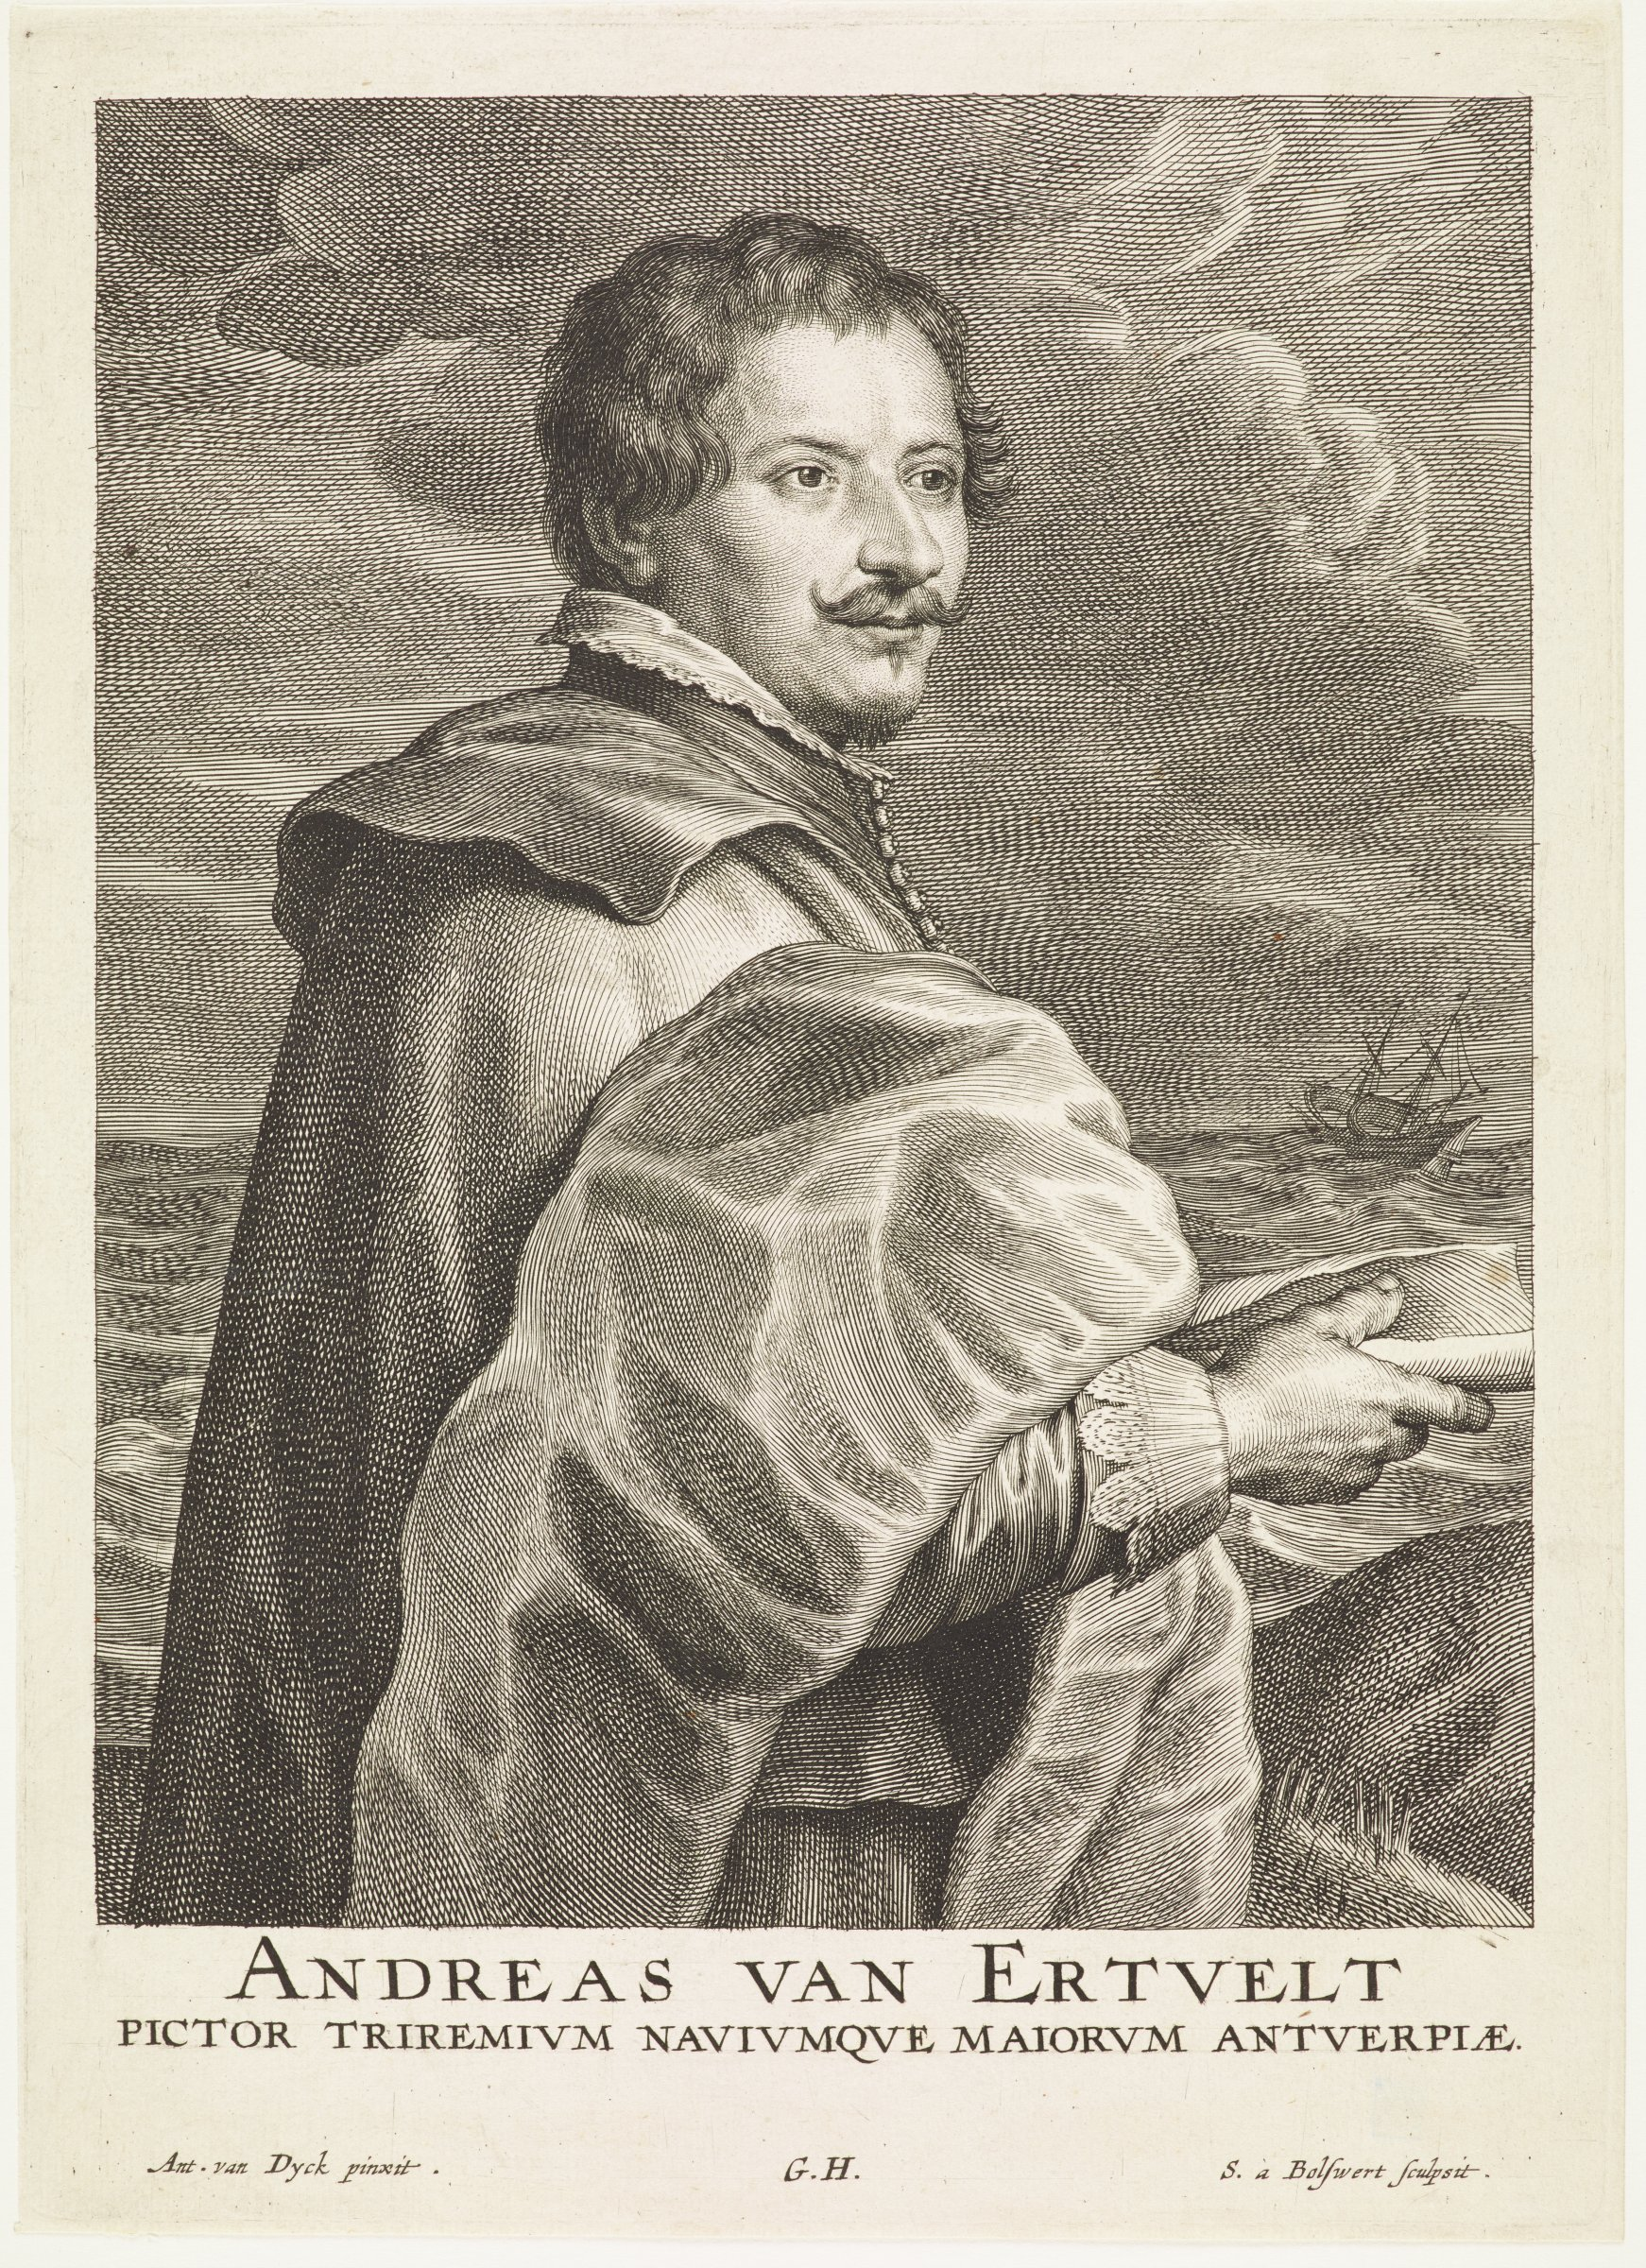 Eertvelt was a marine painter. He is seen here in portrait from the waist up. He is turned to the proper left with his head turned, facing almost front. Behind him is a scene of the ocean with a ship and voluptuous clouds. This is from the Gillis Hendricx edition of the Iconography (Icones Principum Virorum Doctorum, Pictorum Chalcographorum Statuorum nec non Amatorum Pictoriae Artis Numero Centum), 1632-44.